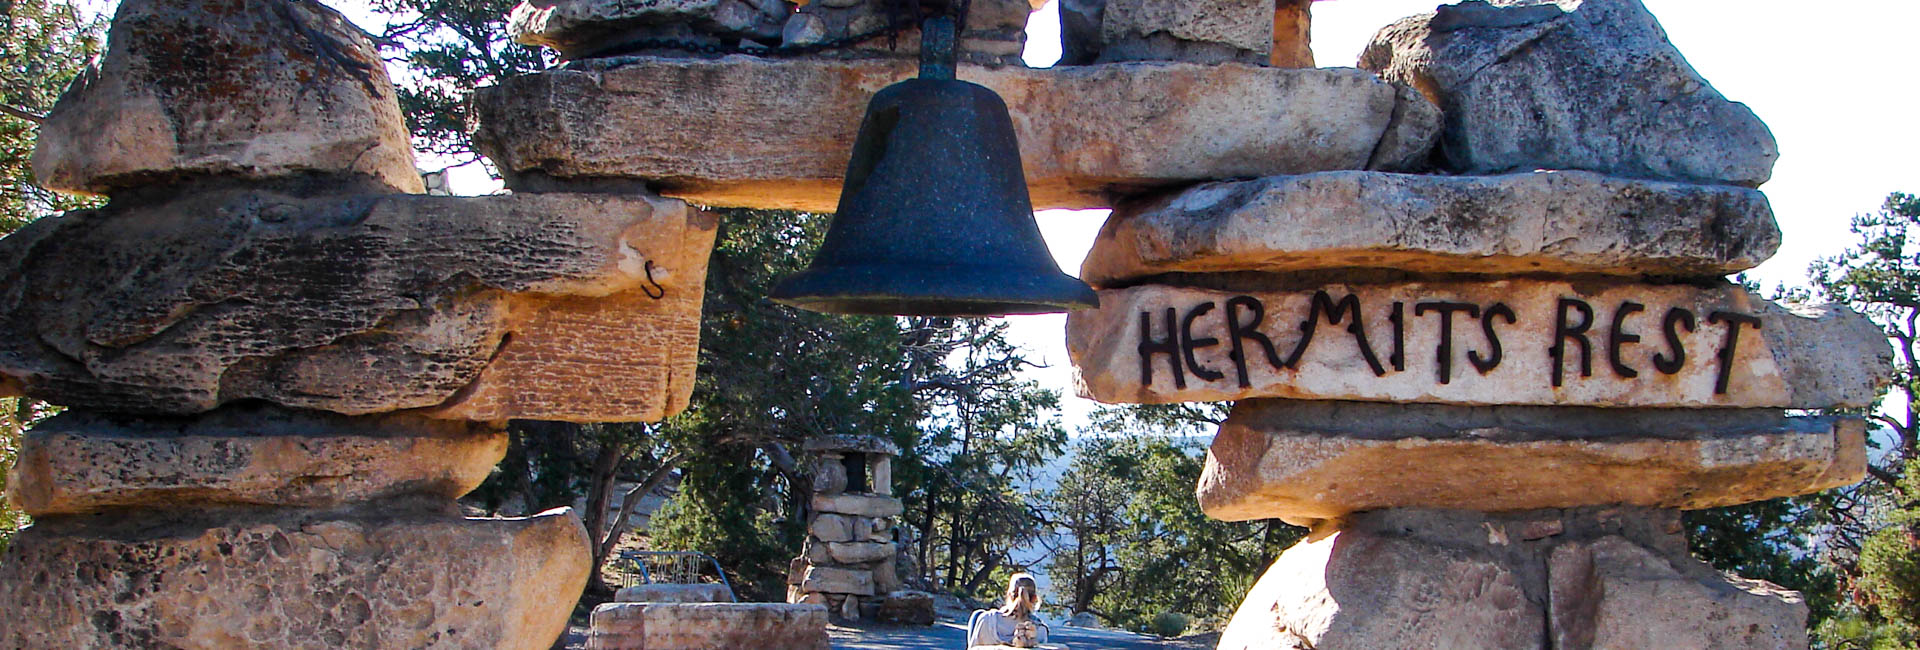 Stop at Hermit's Rest on our self-guided grand canyon backpacking tour!